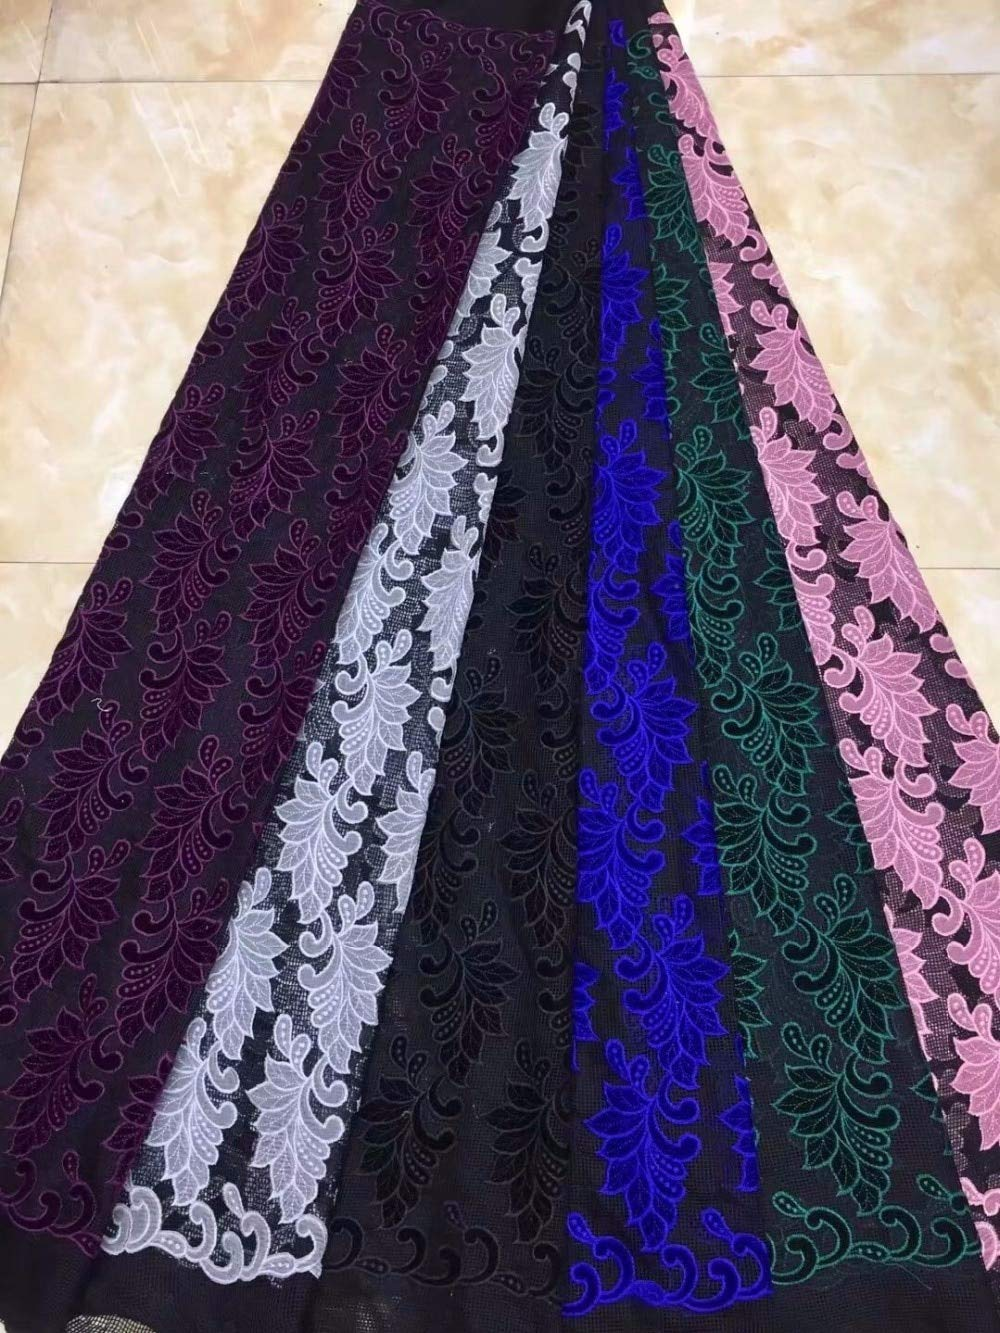 Laliva Black African Lace Fabric African Tulle Lace Fabric with Nice Velvet French Net Lace for Women Dress - (Color: 2)